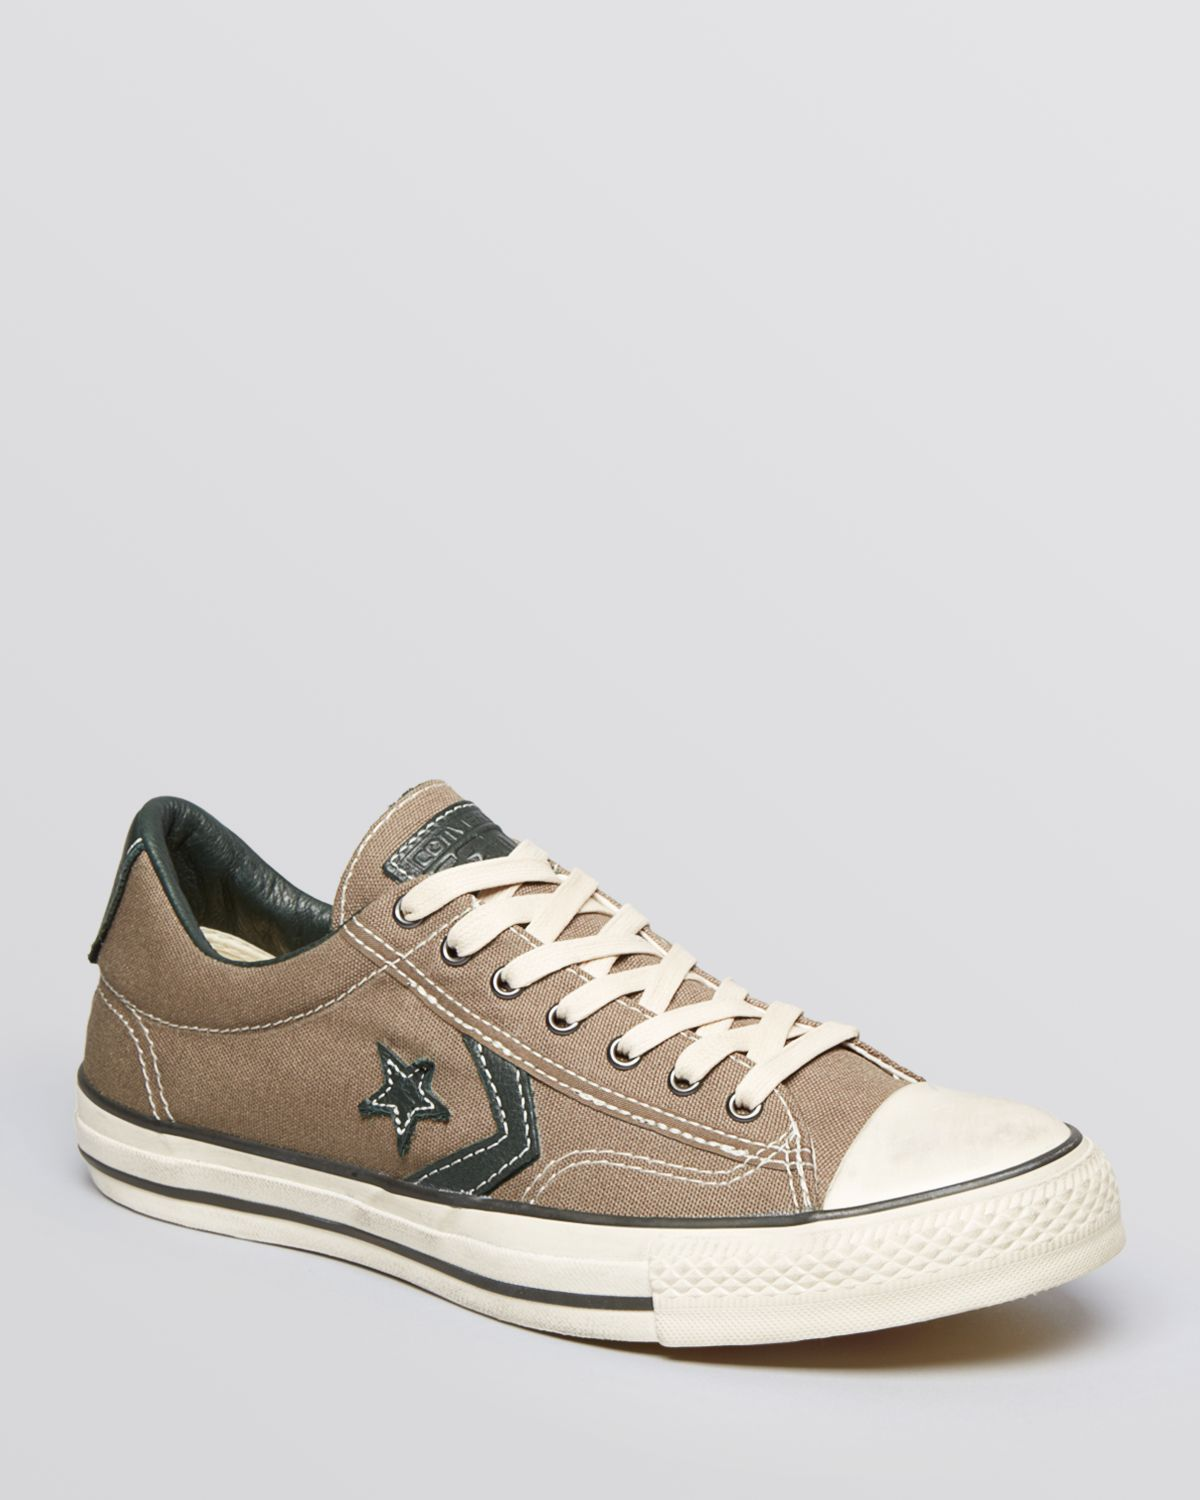 9472dde8e0be4c Gallery. Previously sold at  Bloomingdale s · Men s John Varvatos Converse  ...